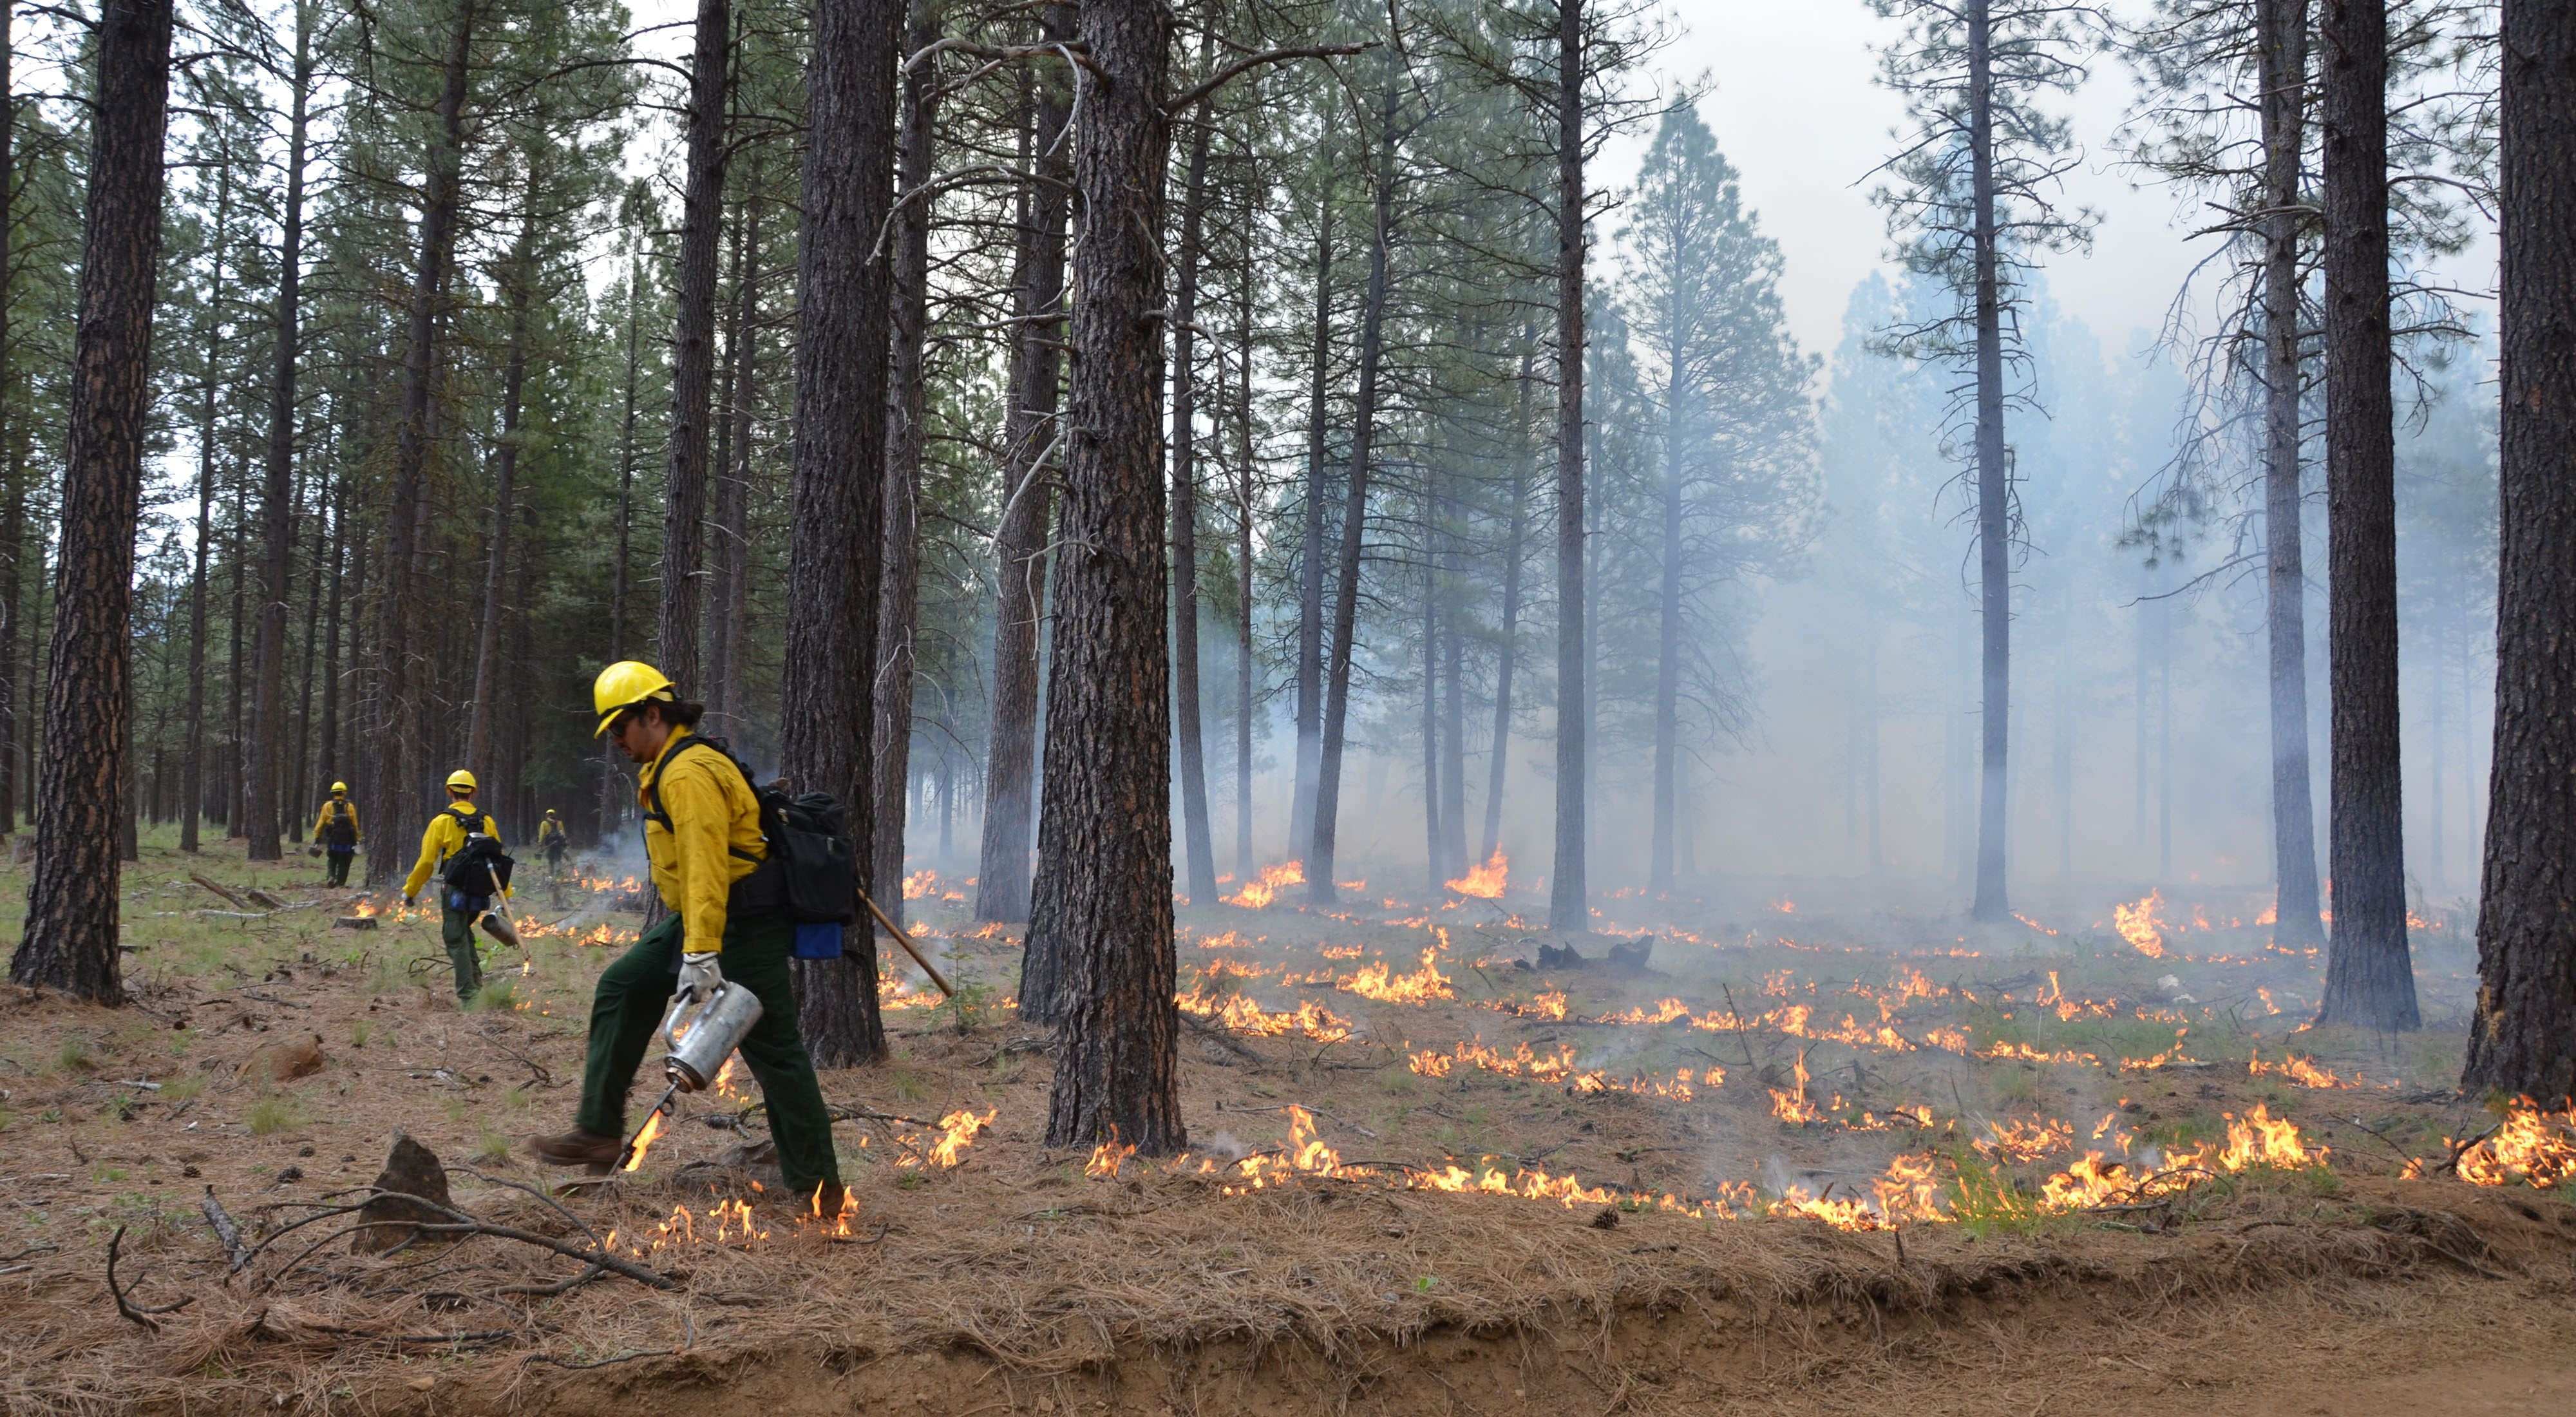 Staff in safety gear with flamethrowers spread out through a forest setting fire to the leaf litter.